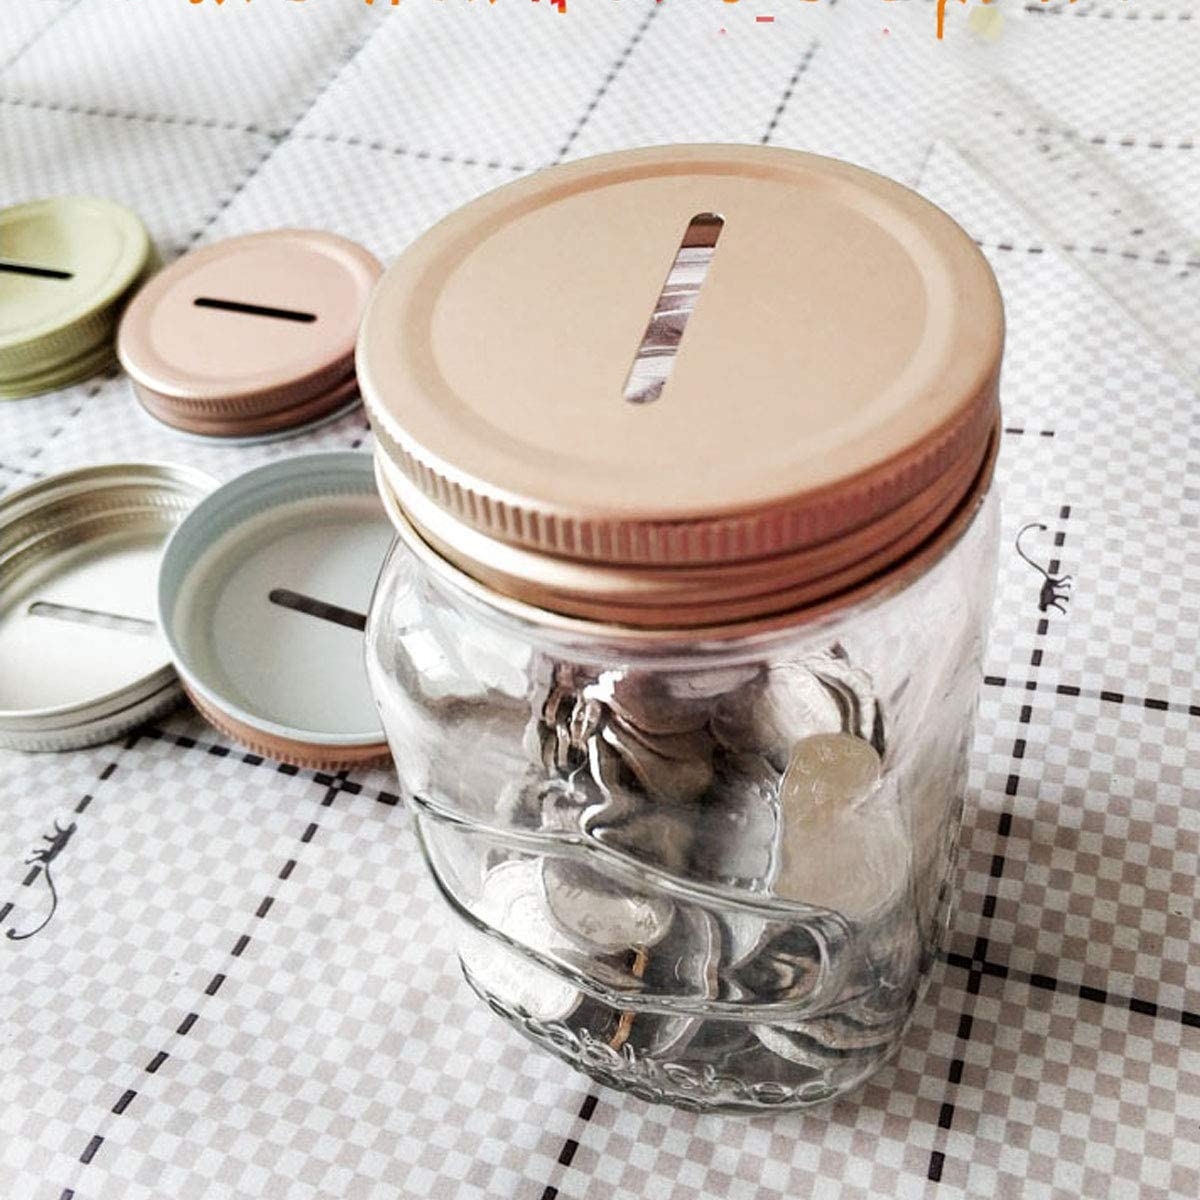 TiaoBug 8Pcs Polished Rust Resistant Coin Slot Bank Lid Inserts Stainless Steel Polished Rust Resistant Mason Ball Canning Jars Lid Change Bill Storage Jars Lid 70mm Inner Diameter Rose One Size